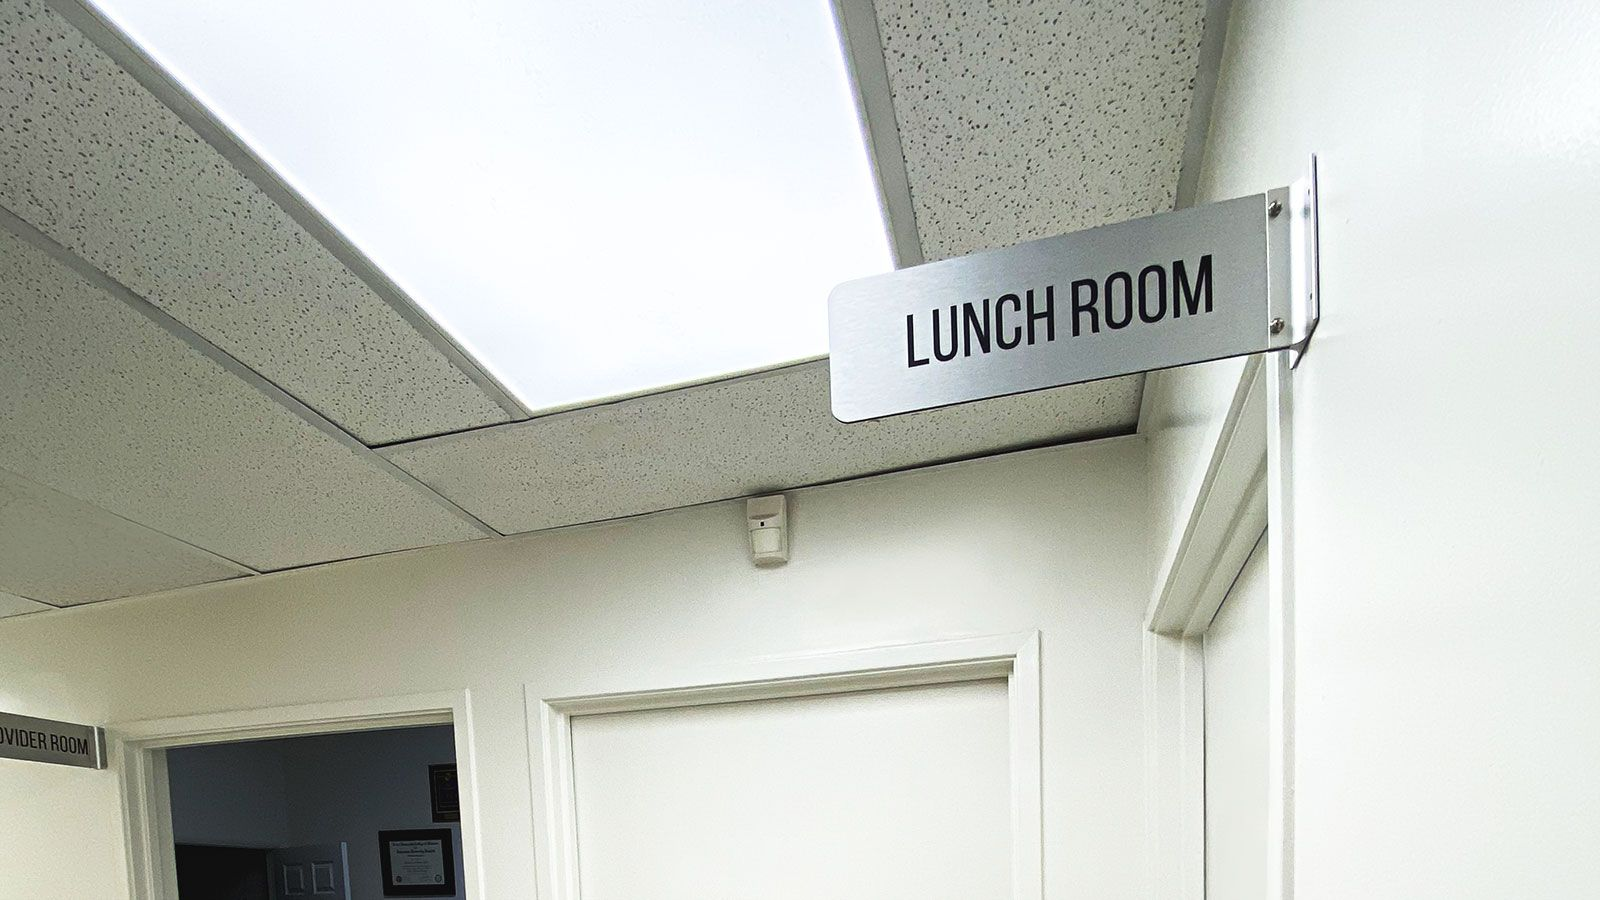 wall-blade brushed aluminum sign